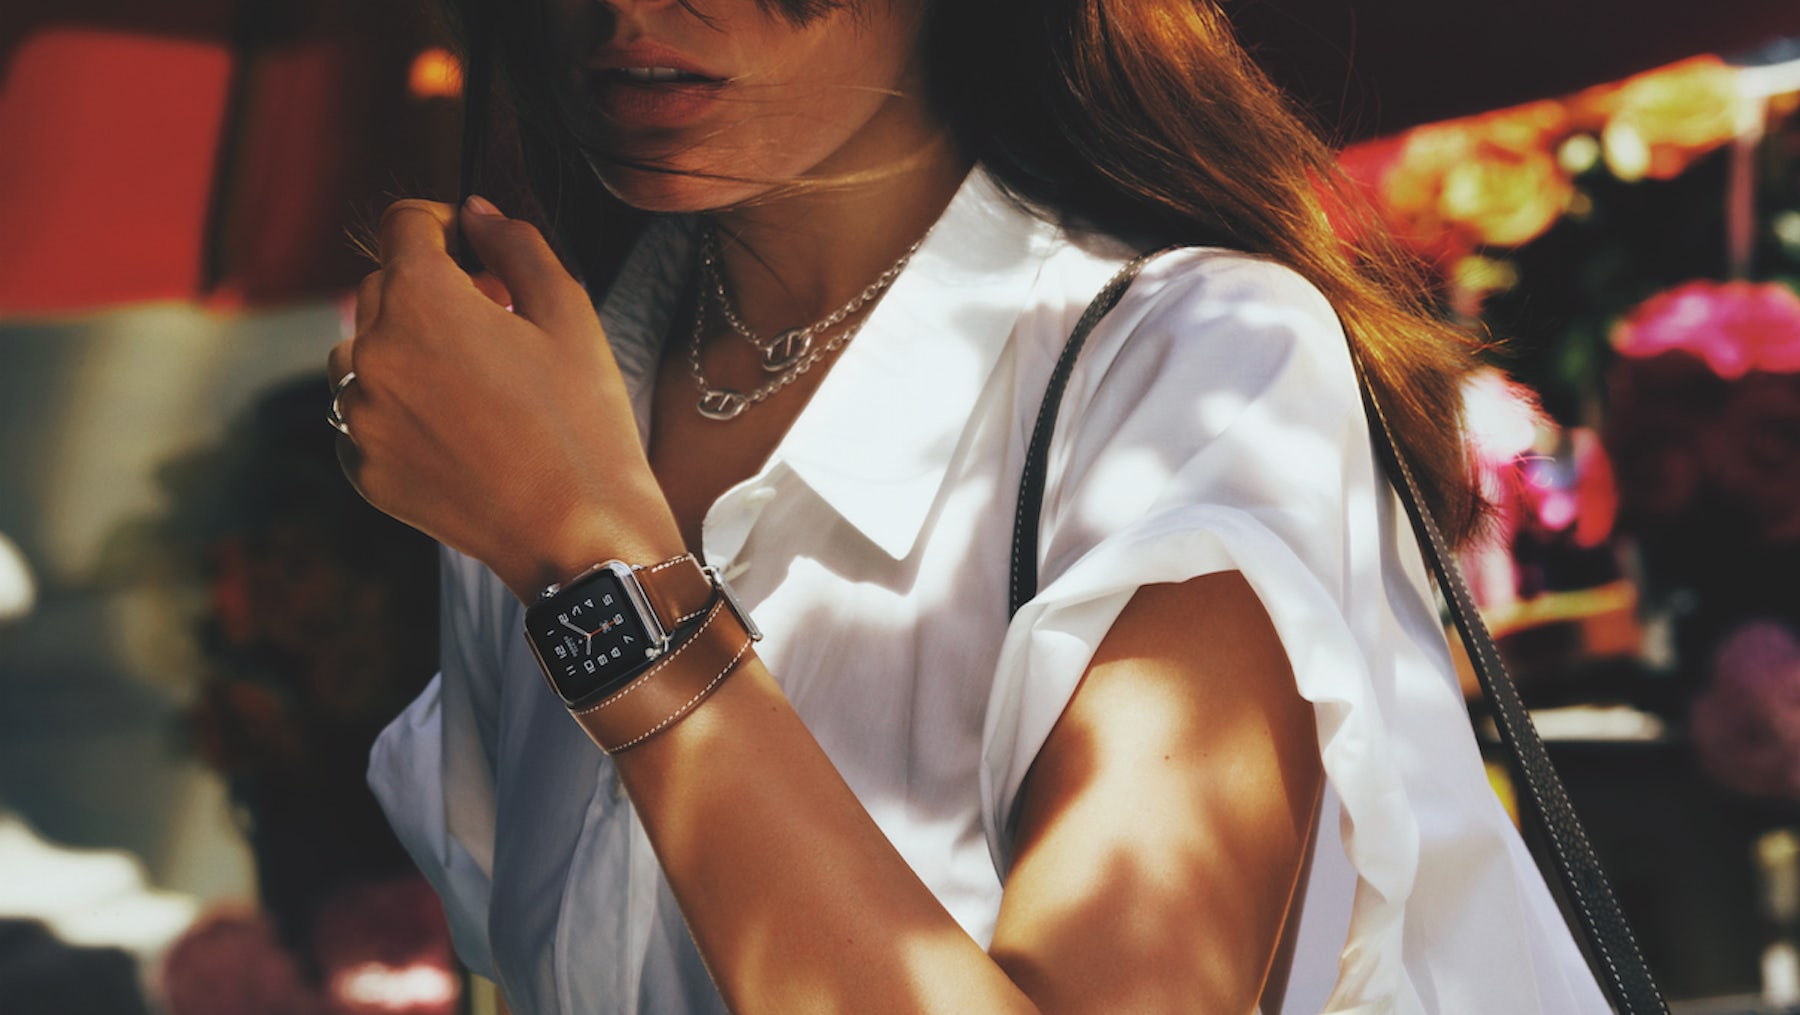 Apple Watch Hermès | Source: Apple